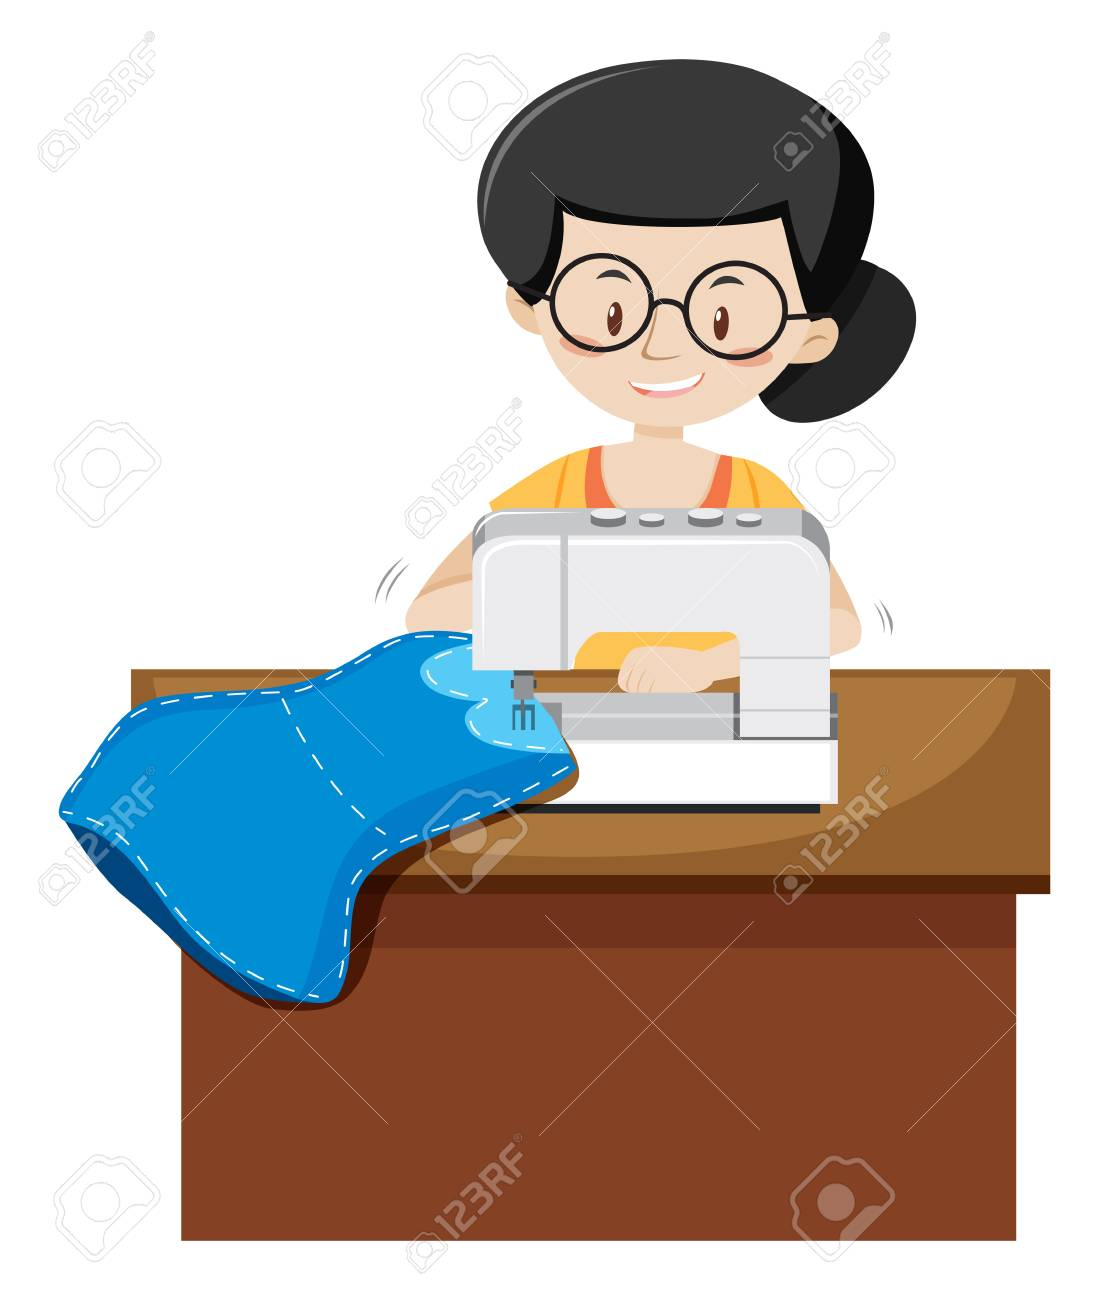 A Tailor on White Background illustration - 115065782